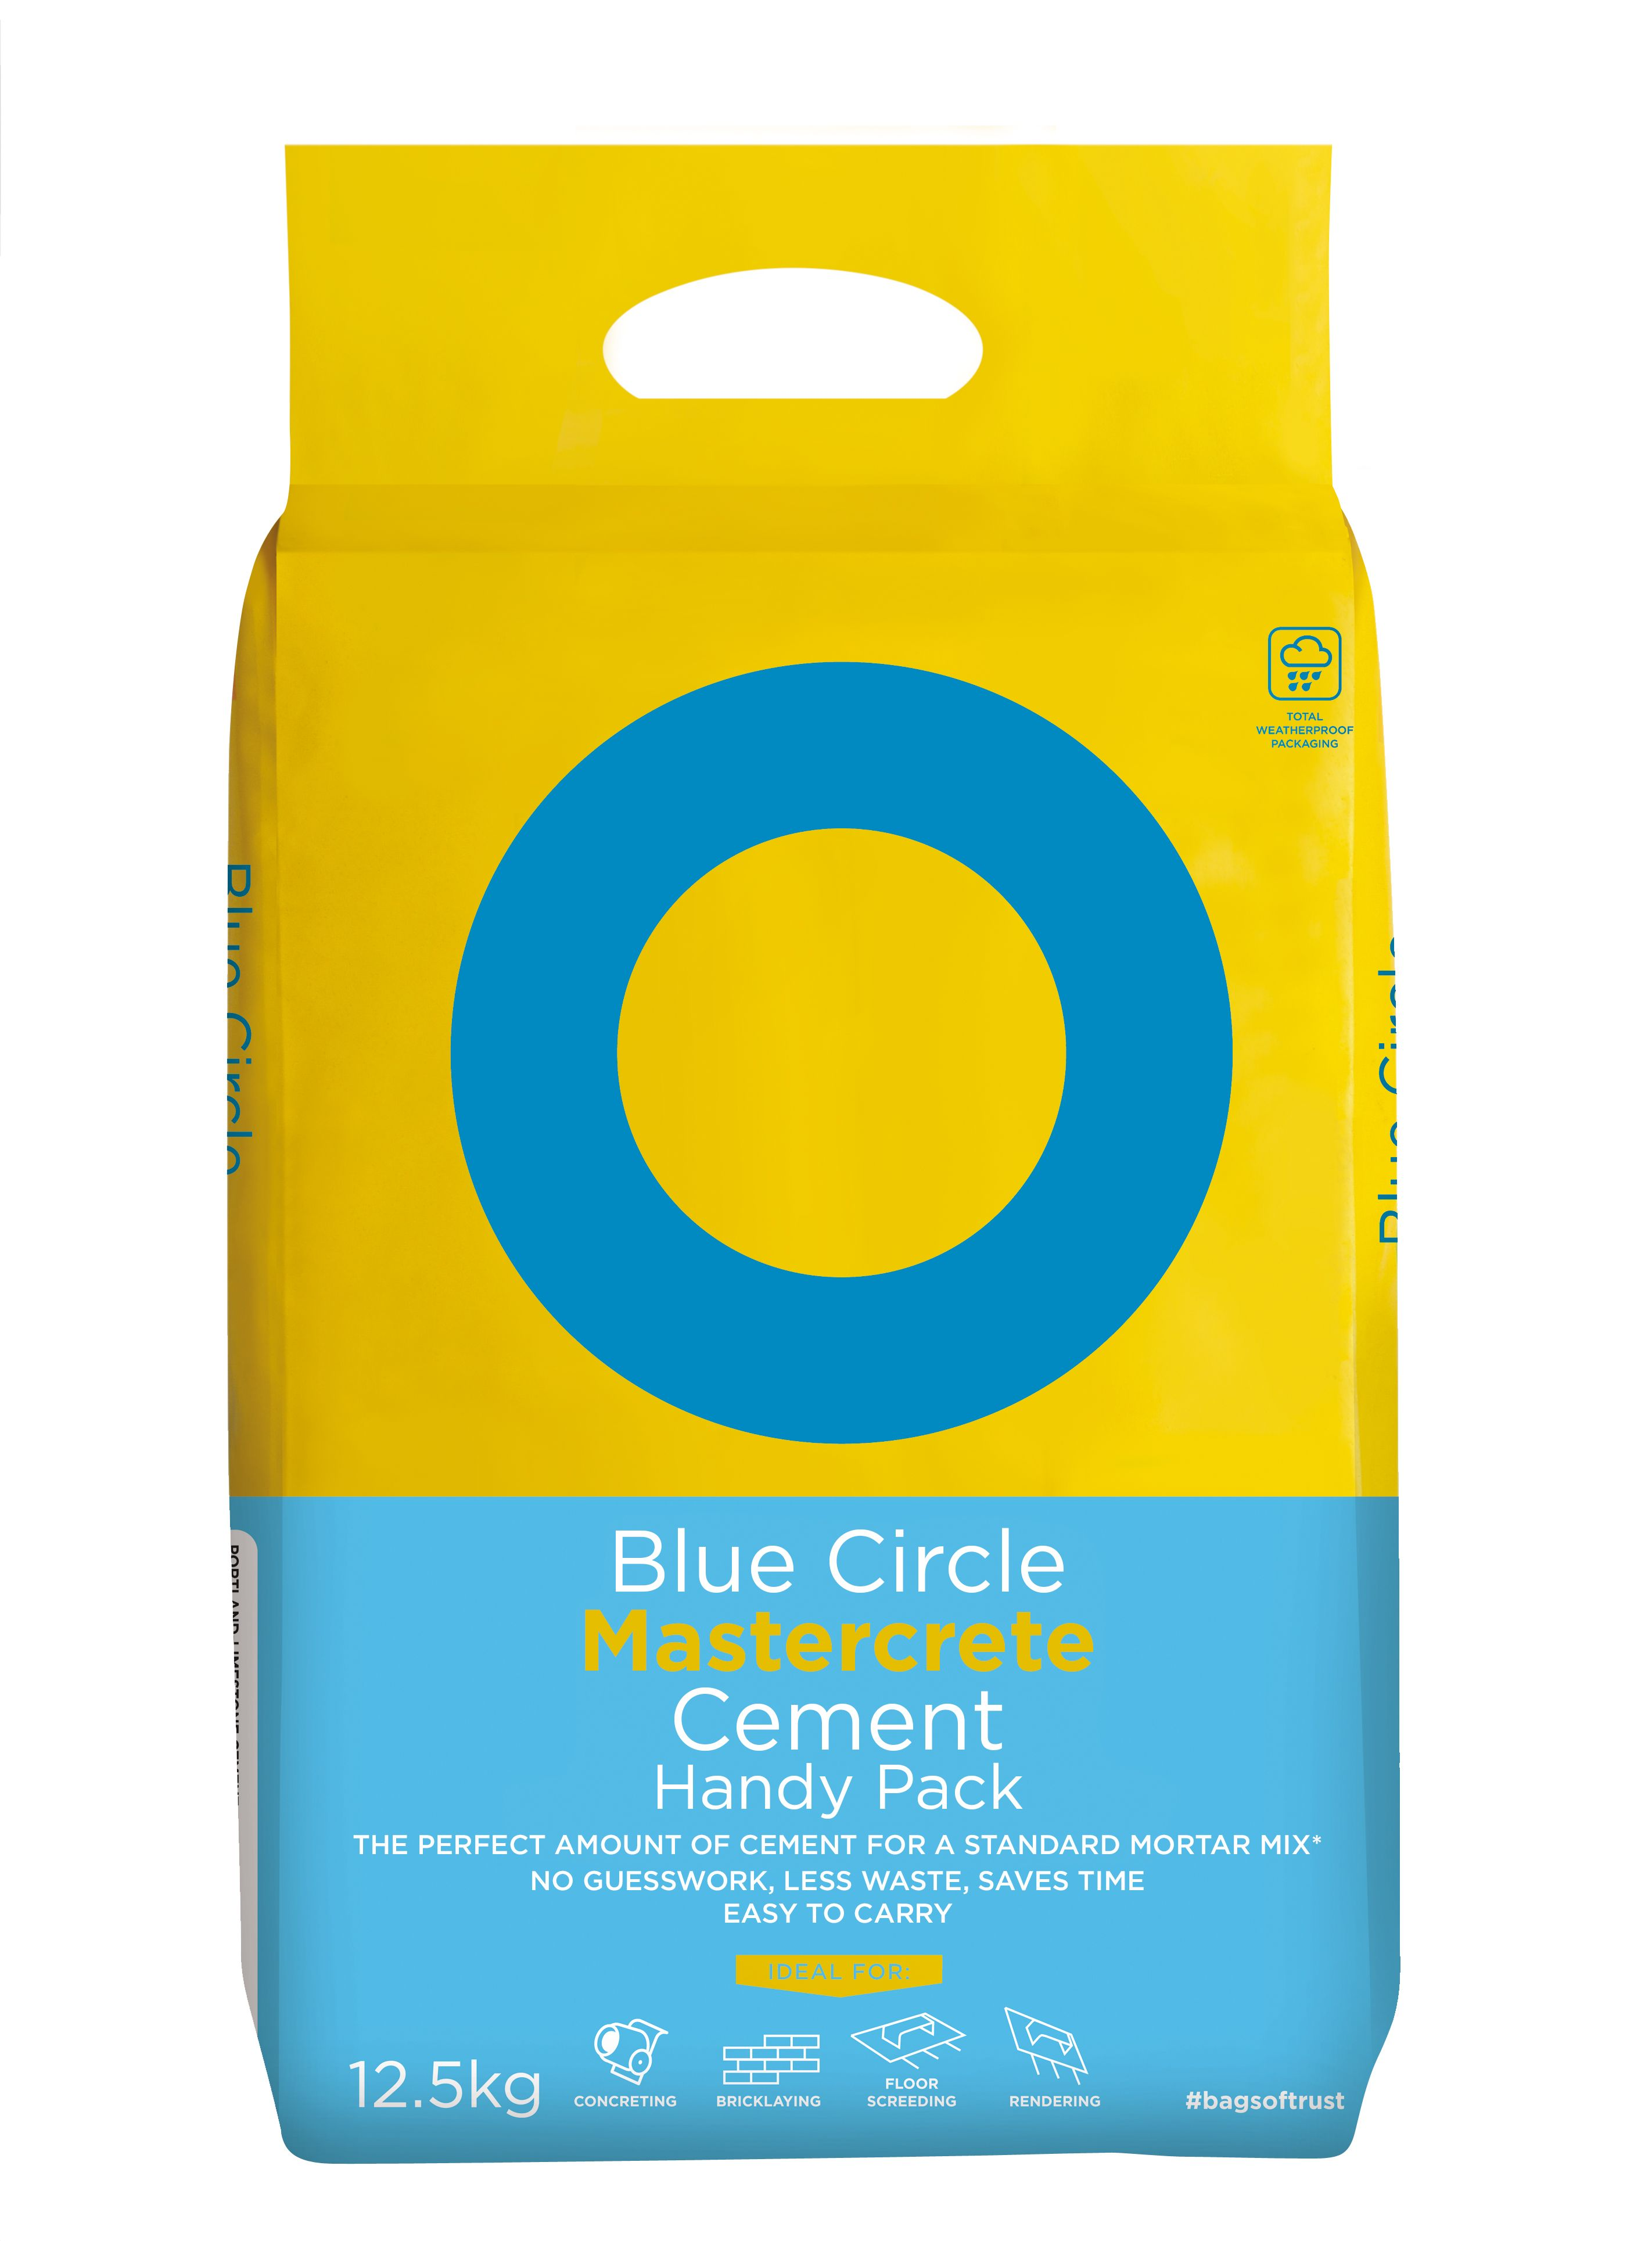 Blue Circle Mastercrete Handy Pack Cement 12 5kg Bag